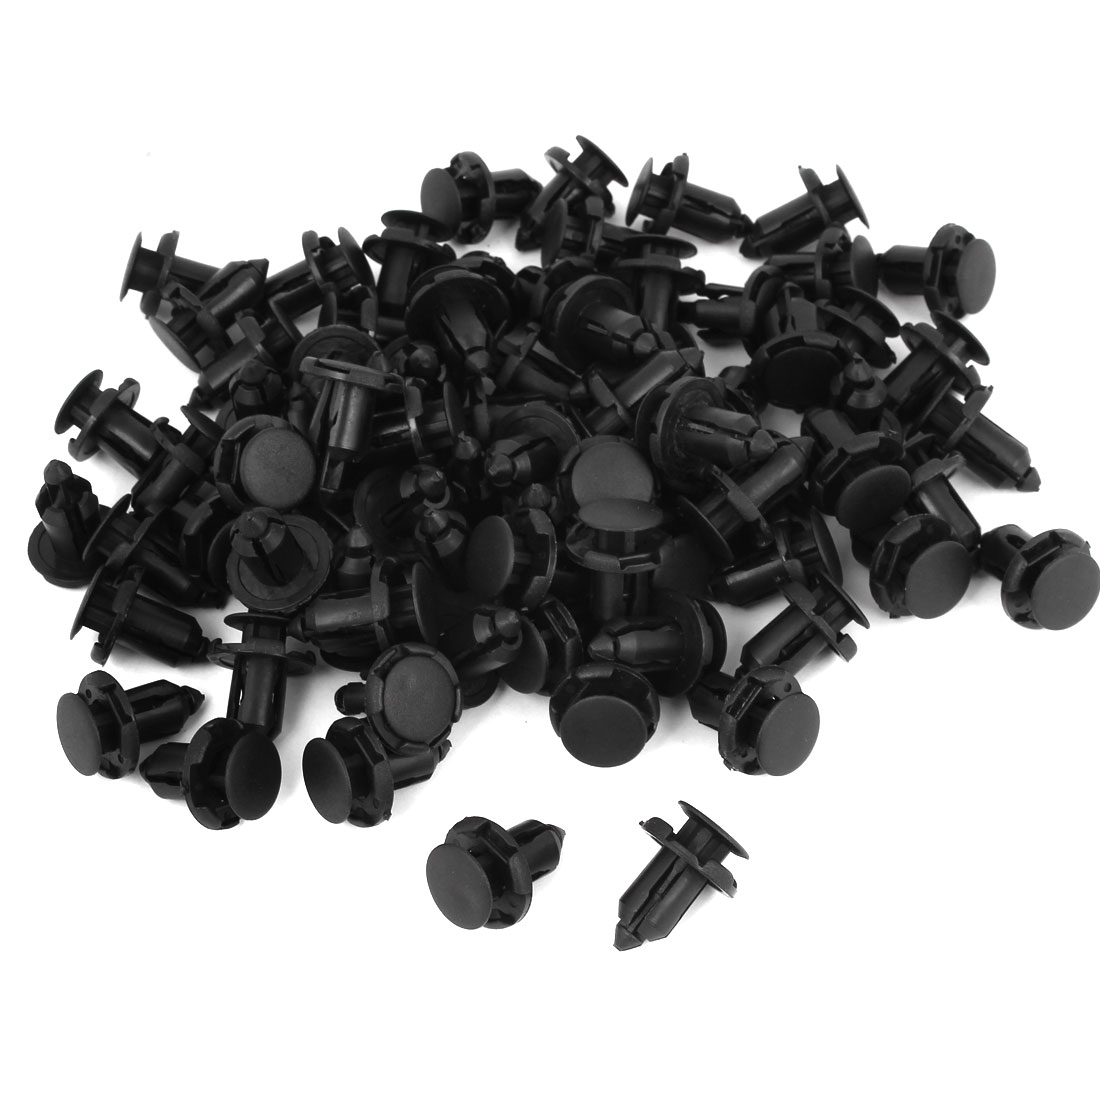 100 Pcs Plastic Push Type Fastener Rivets Fender Clips for 9mm x 15mm Hole